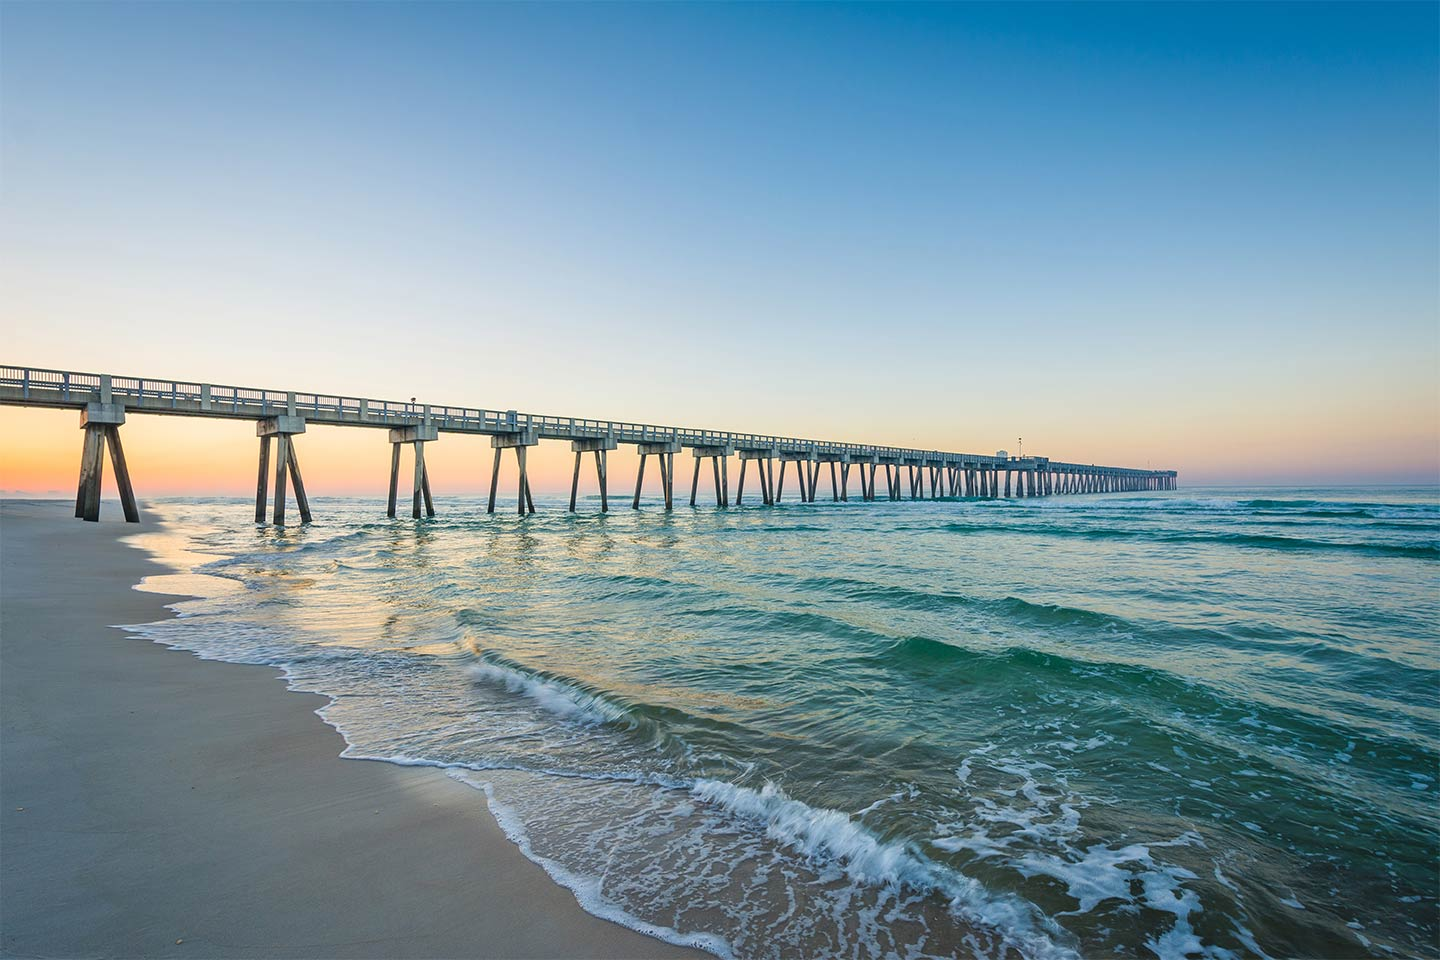 A view from the beach of Panama City Beach's longest fishing pier